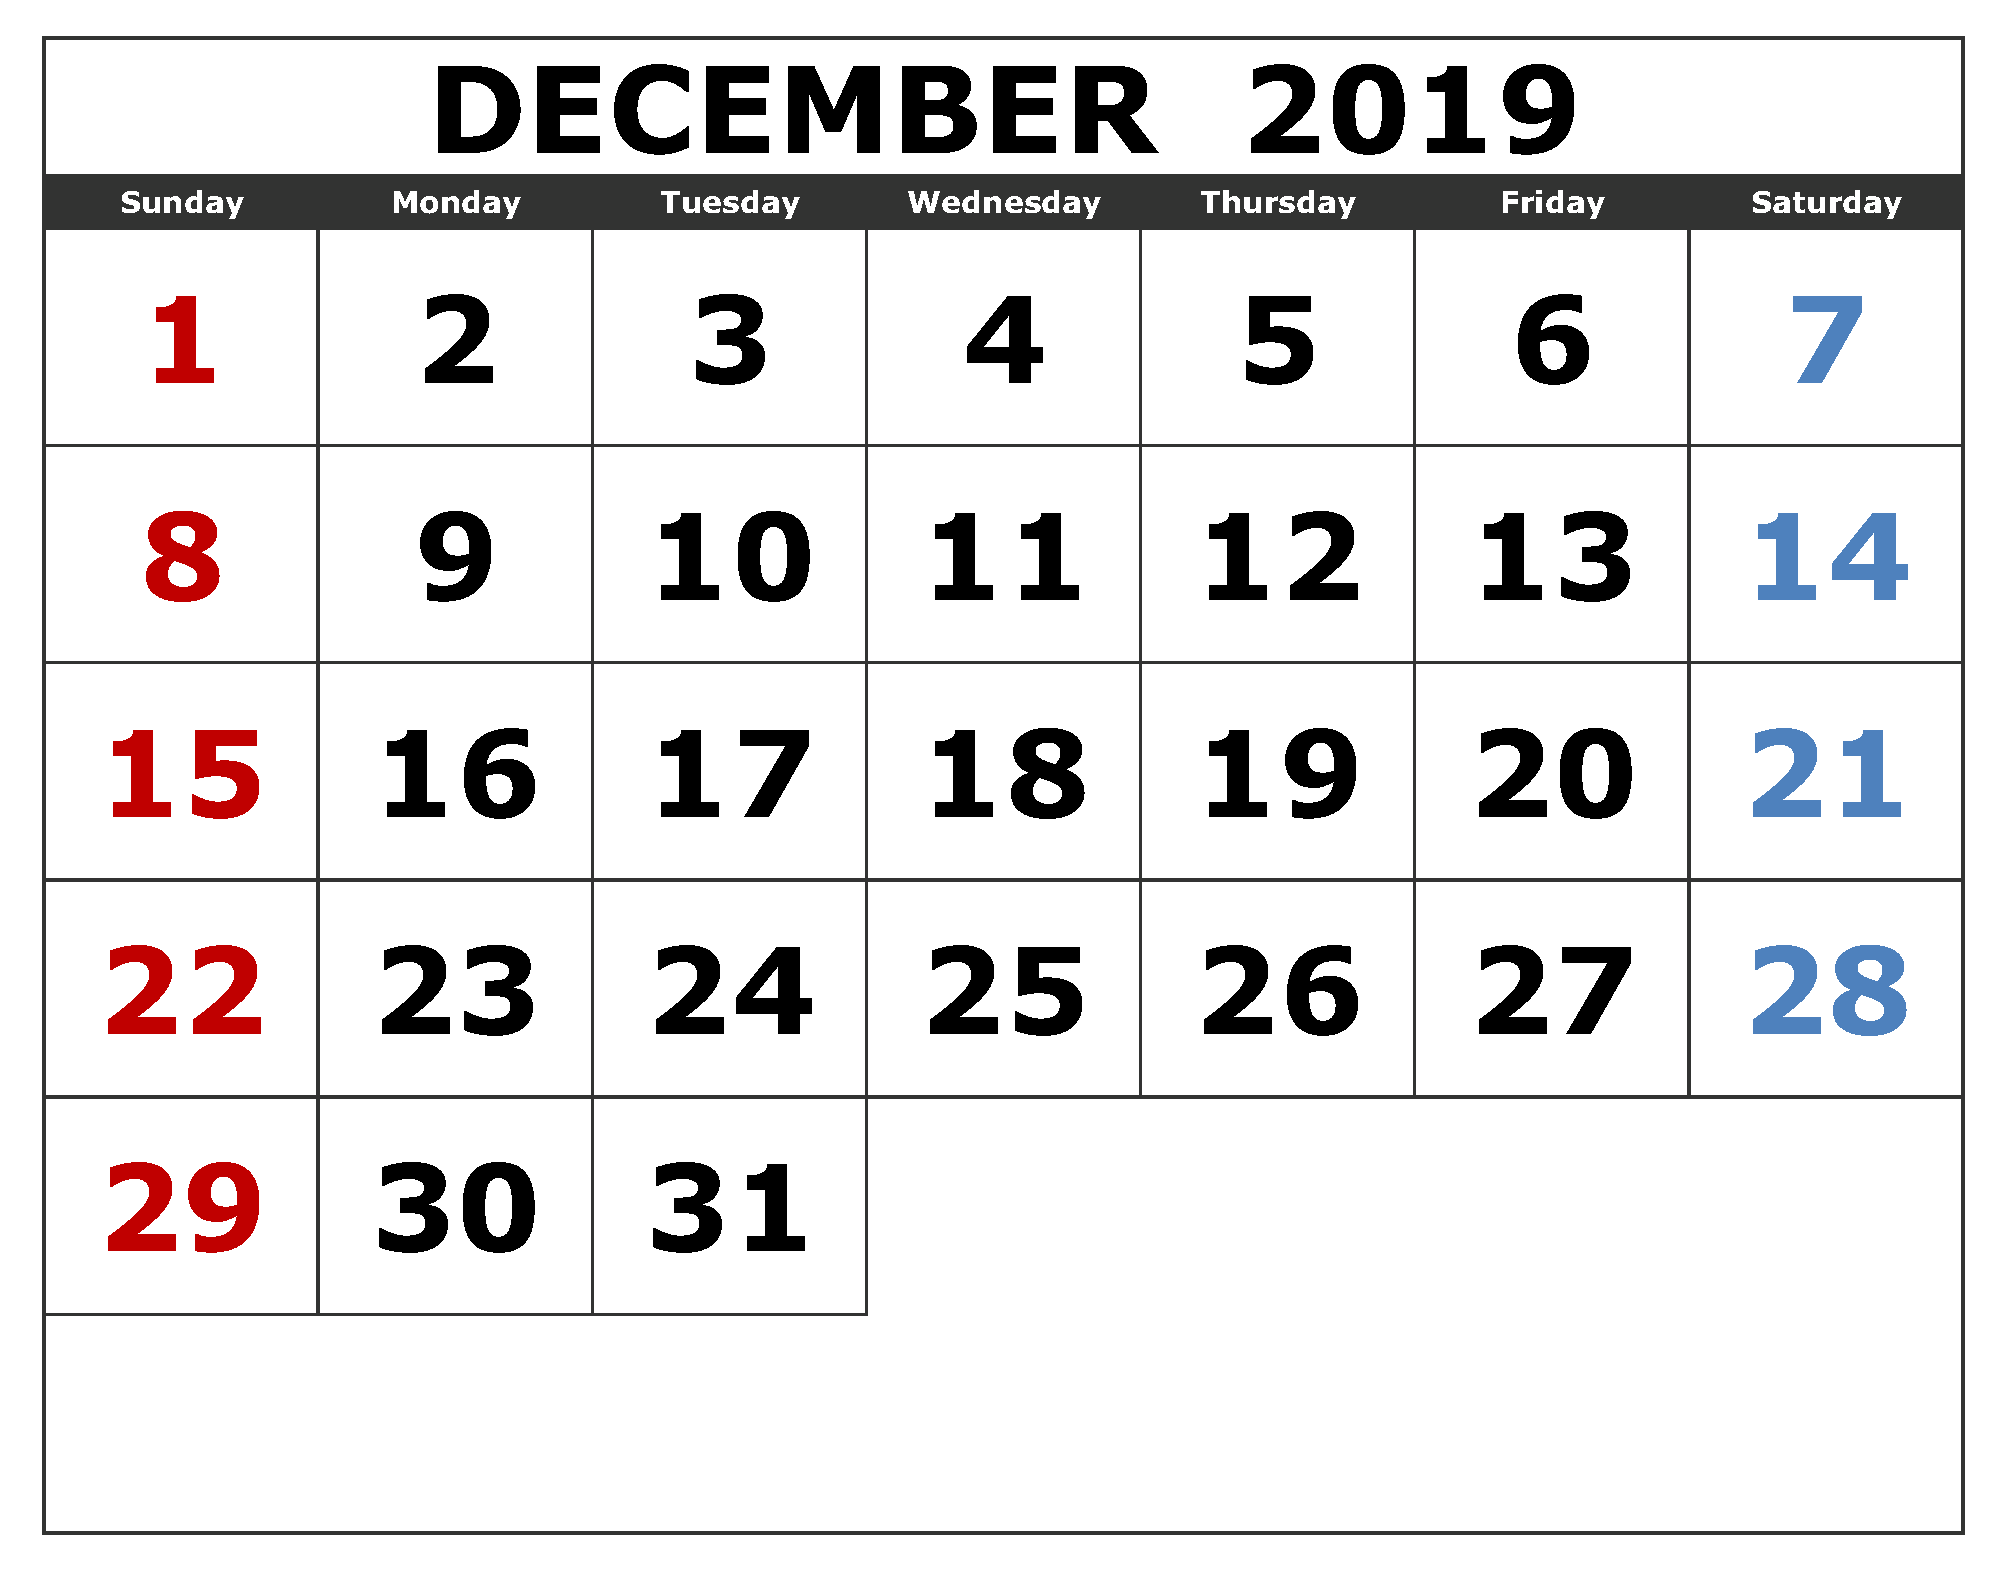 December 2019 Calendar US Federal Holidays